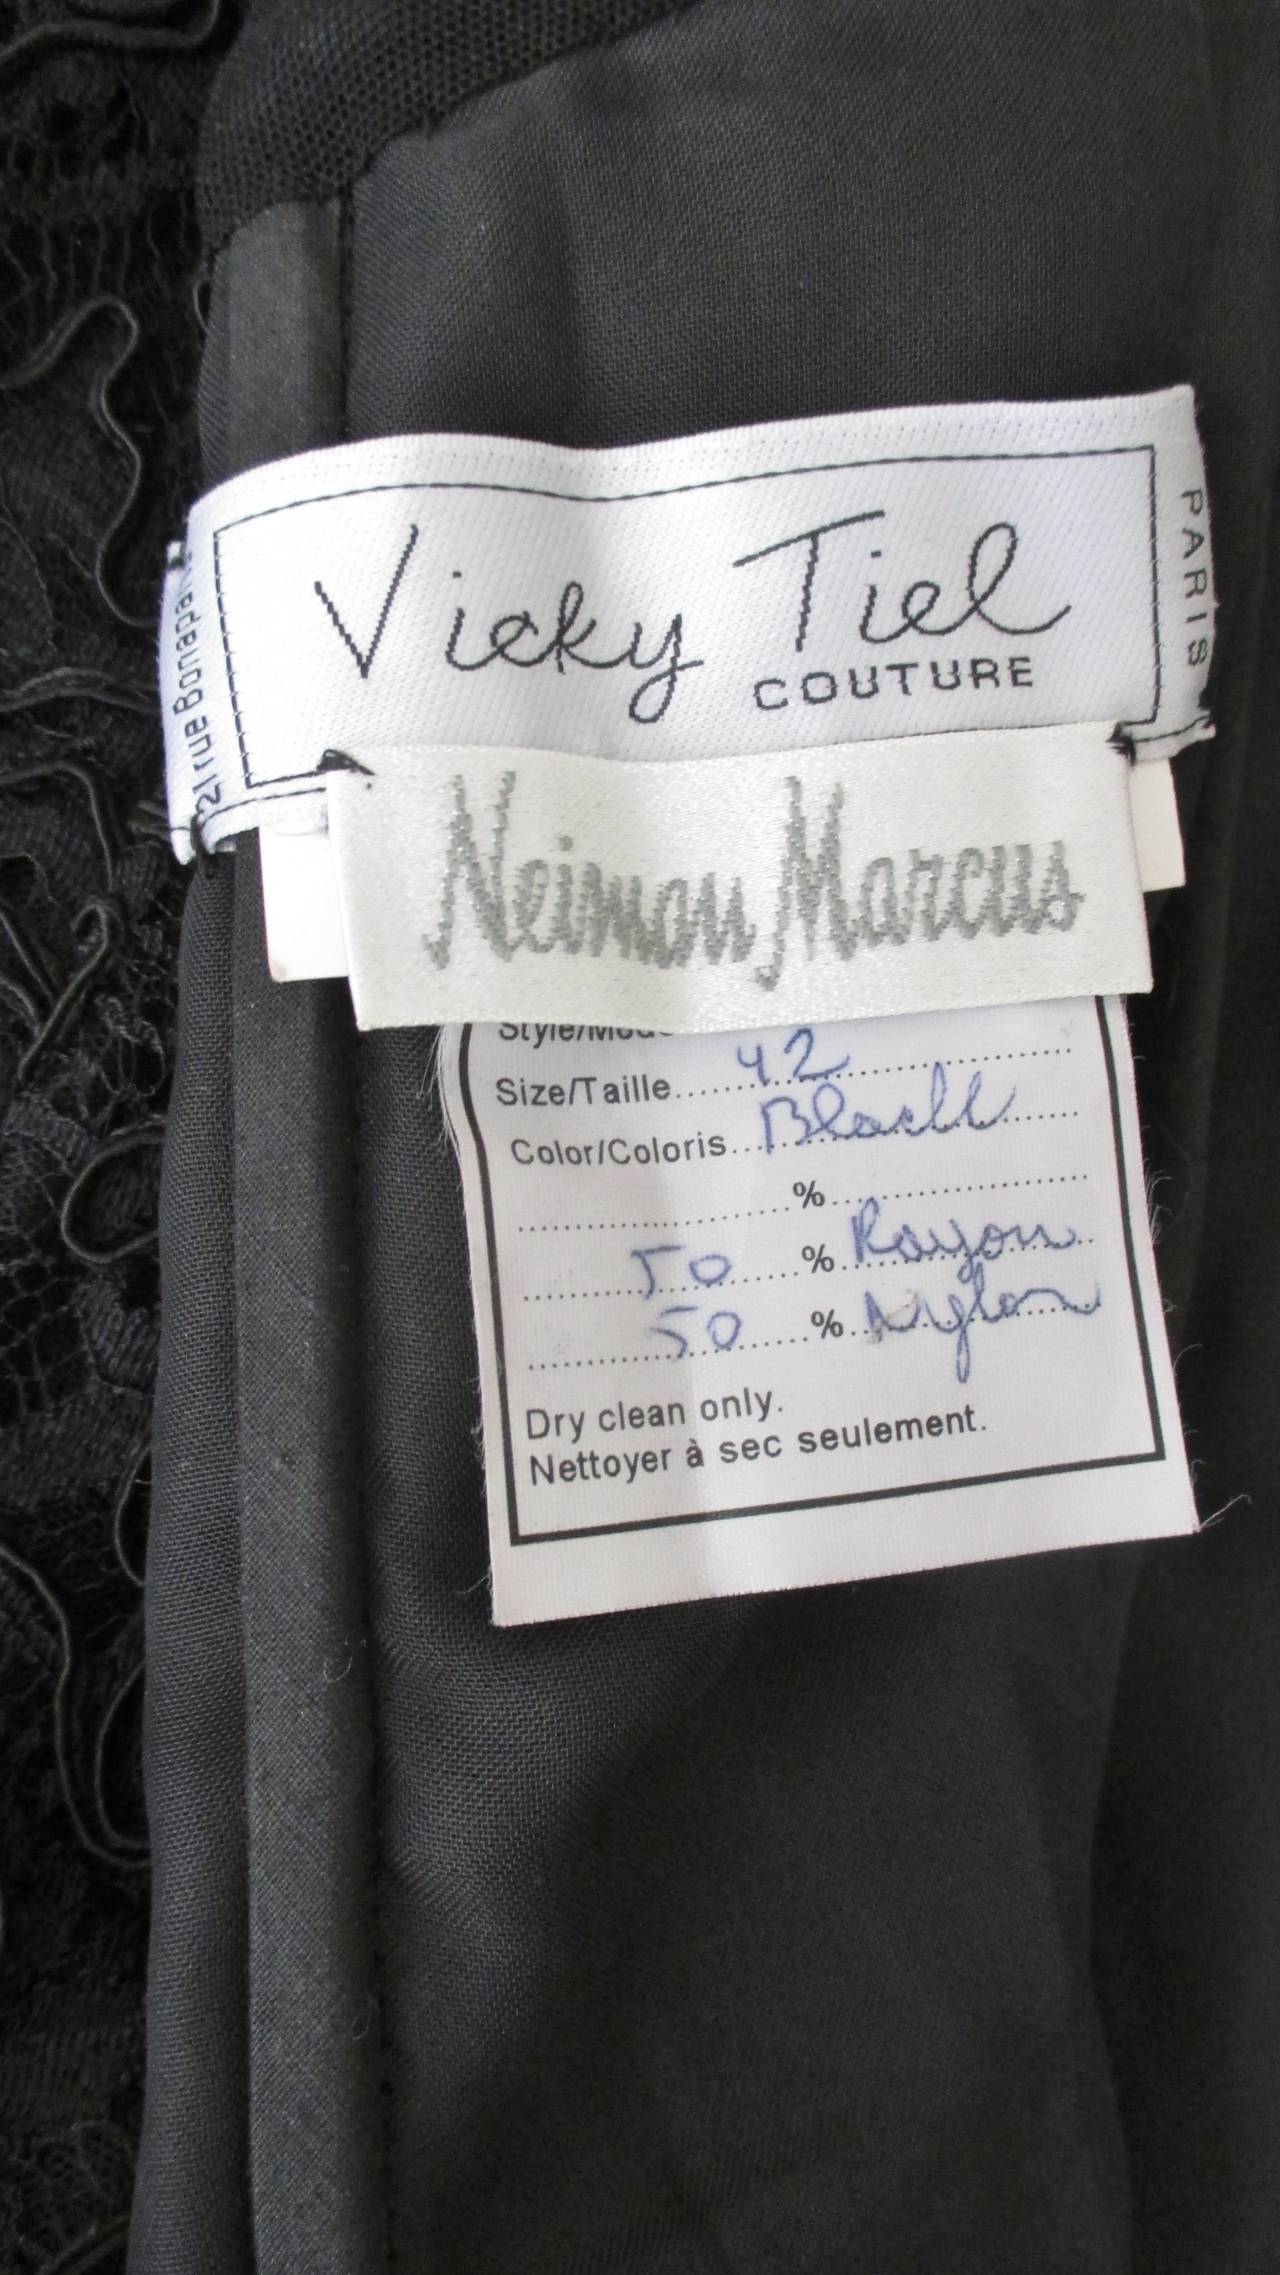 1980s Vicky Tiel Corset Dress For Sale 5